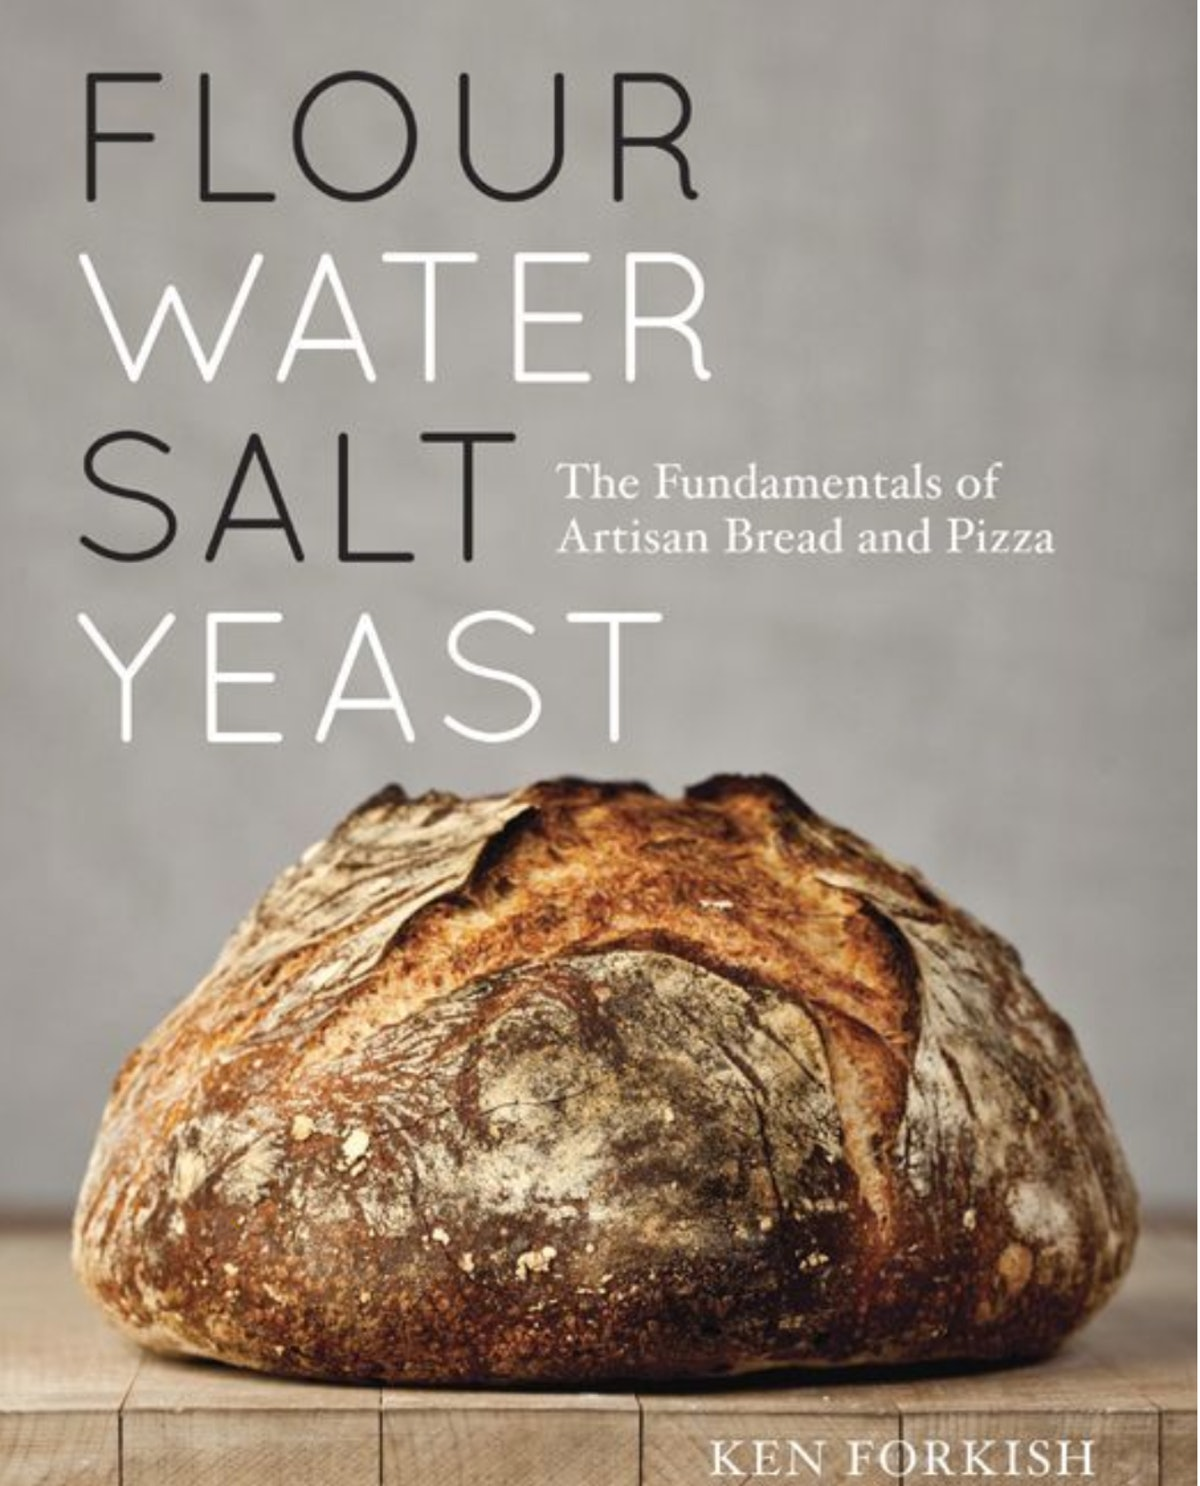 Ken Forkish Flour Water Salt Yeast: The Fundamentals of Artisan Bread and Pizza